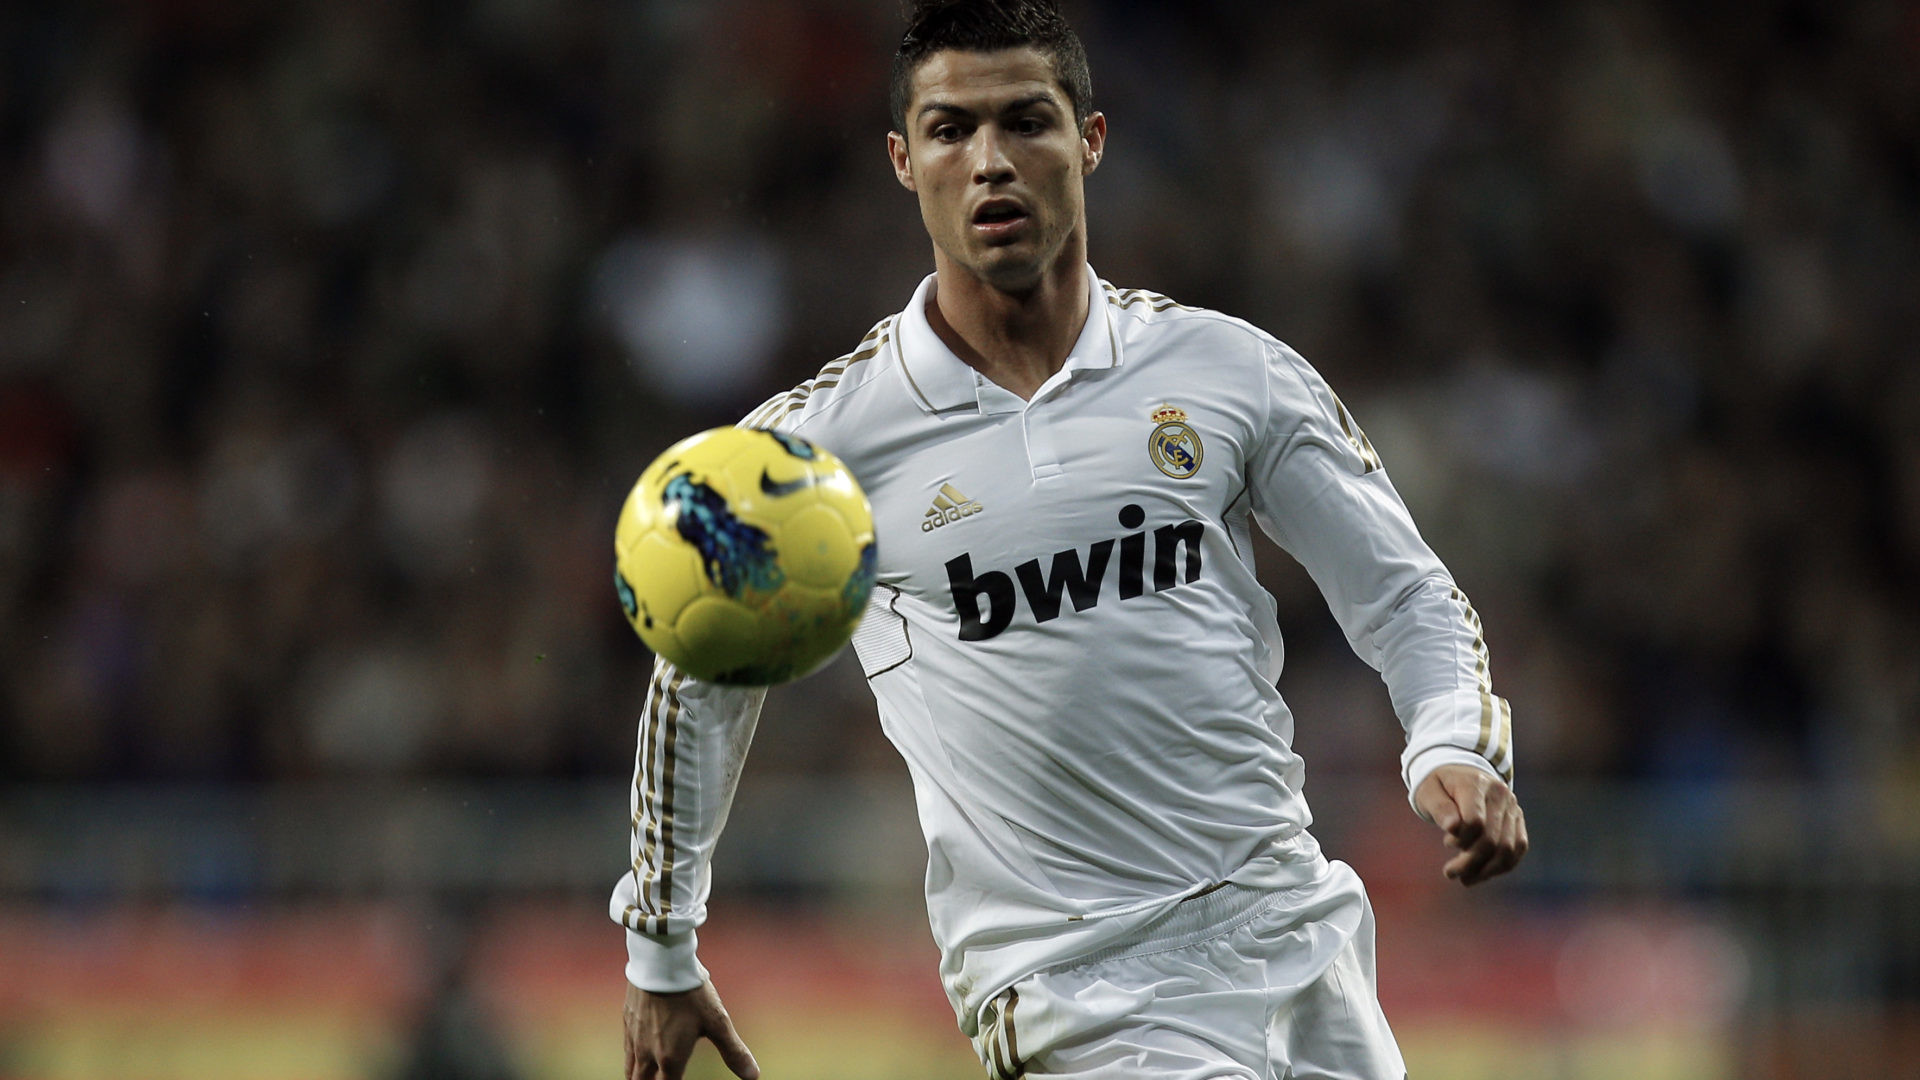 Cristiano Ronaldo HD Images, Pictures